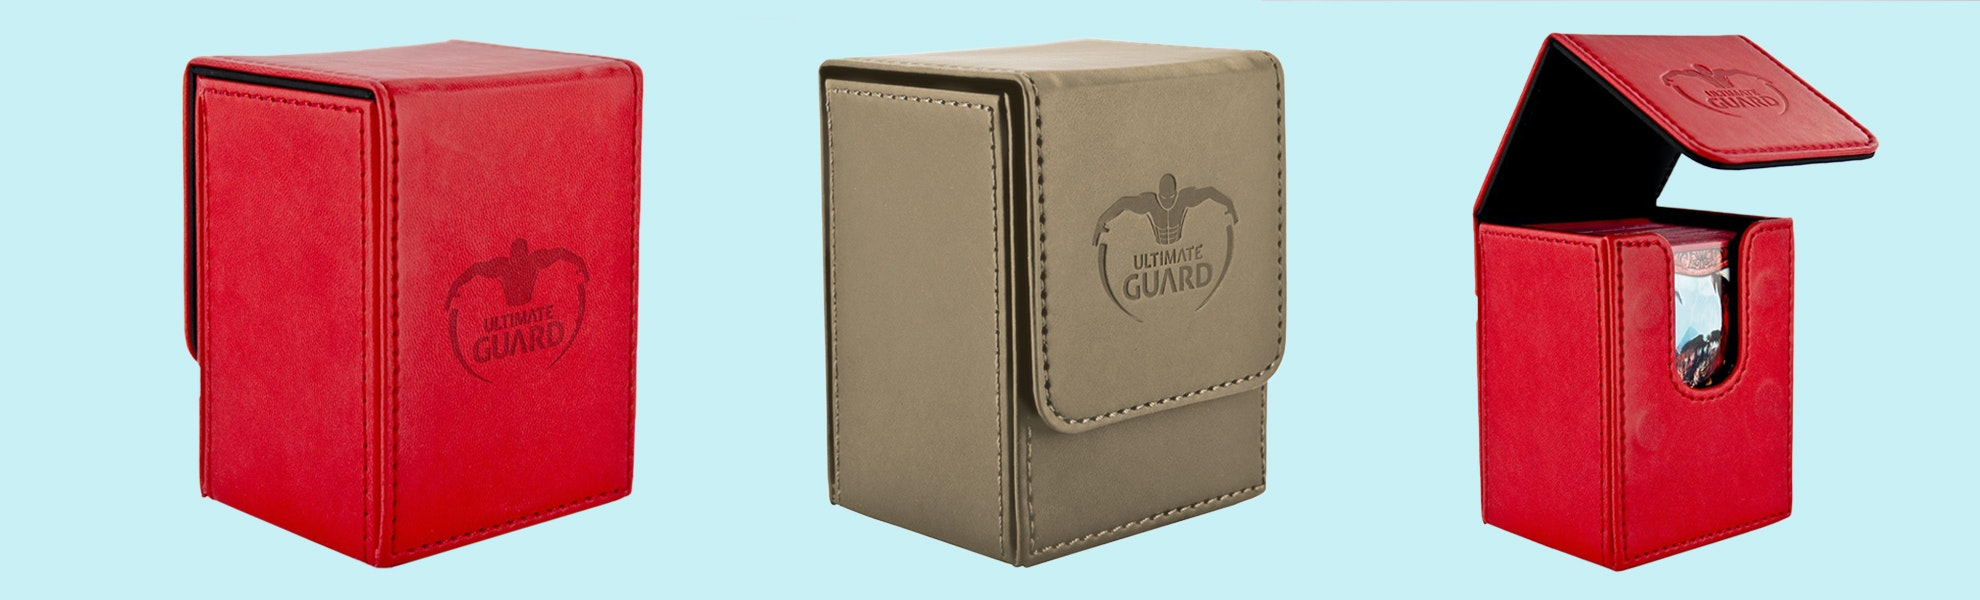 Ultimate Guard Flip Deck Case 80+ Leatherette